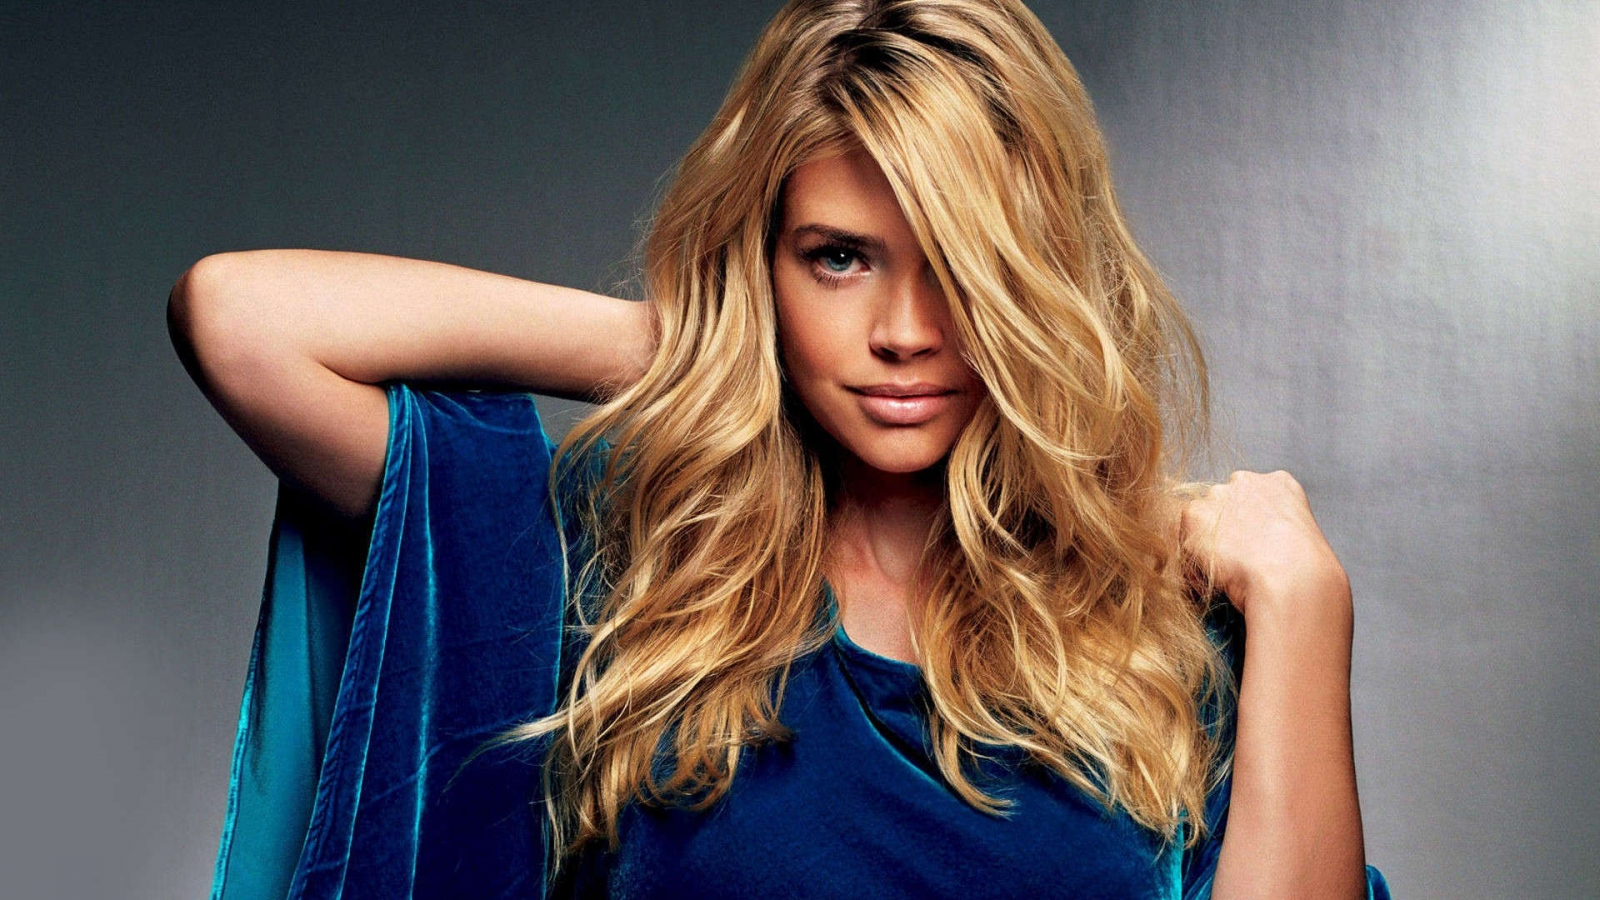 Gorgeous Denise Richards for 1600 x 900 HDTV resolution